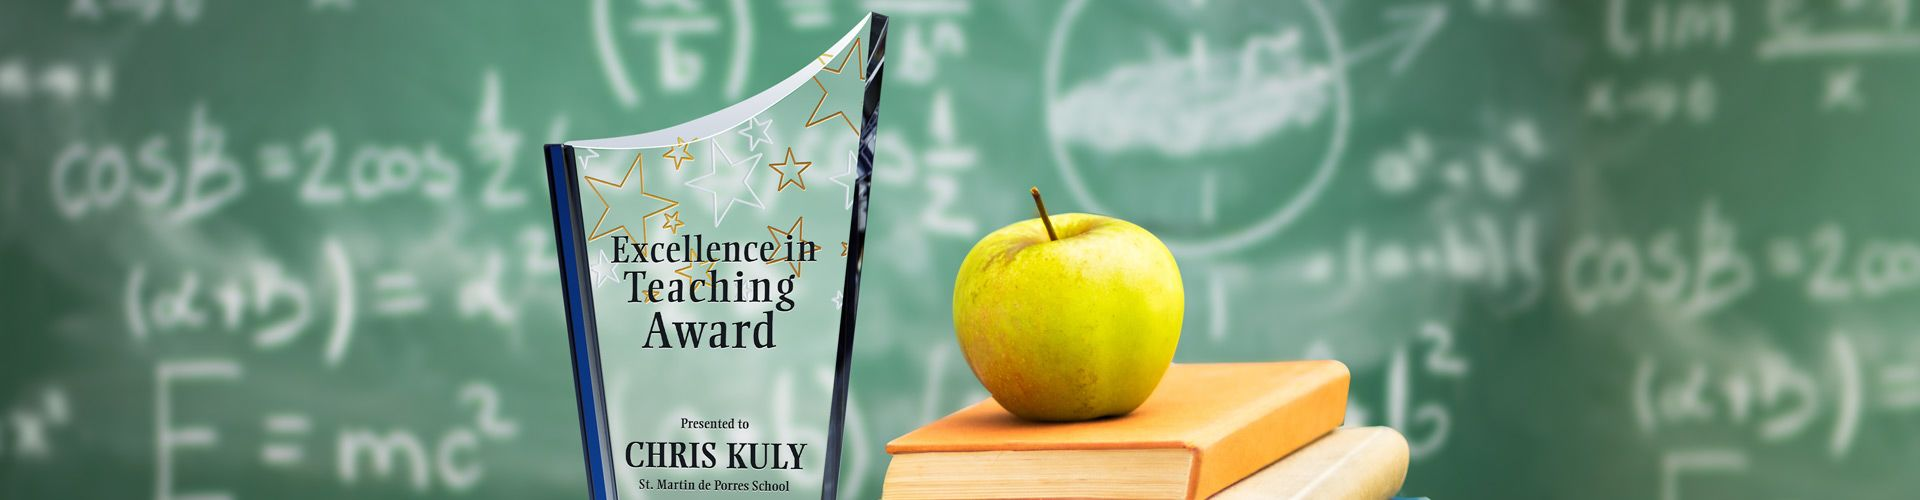 Teacher Recognition Gifts: Custom Award Plaques - Banner 1